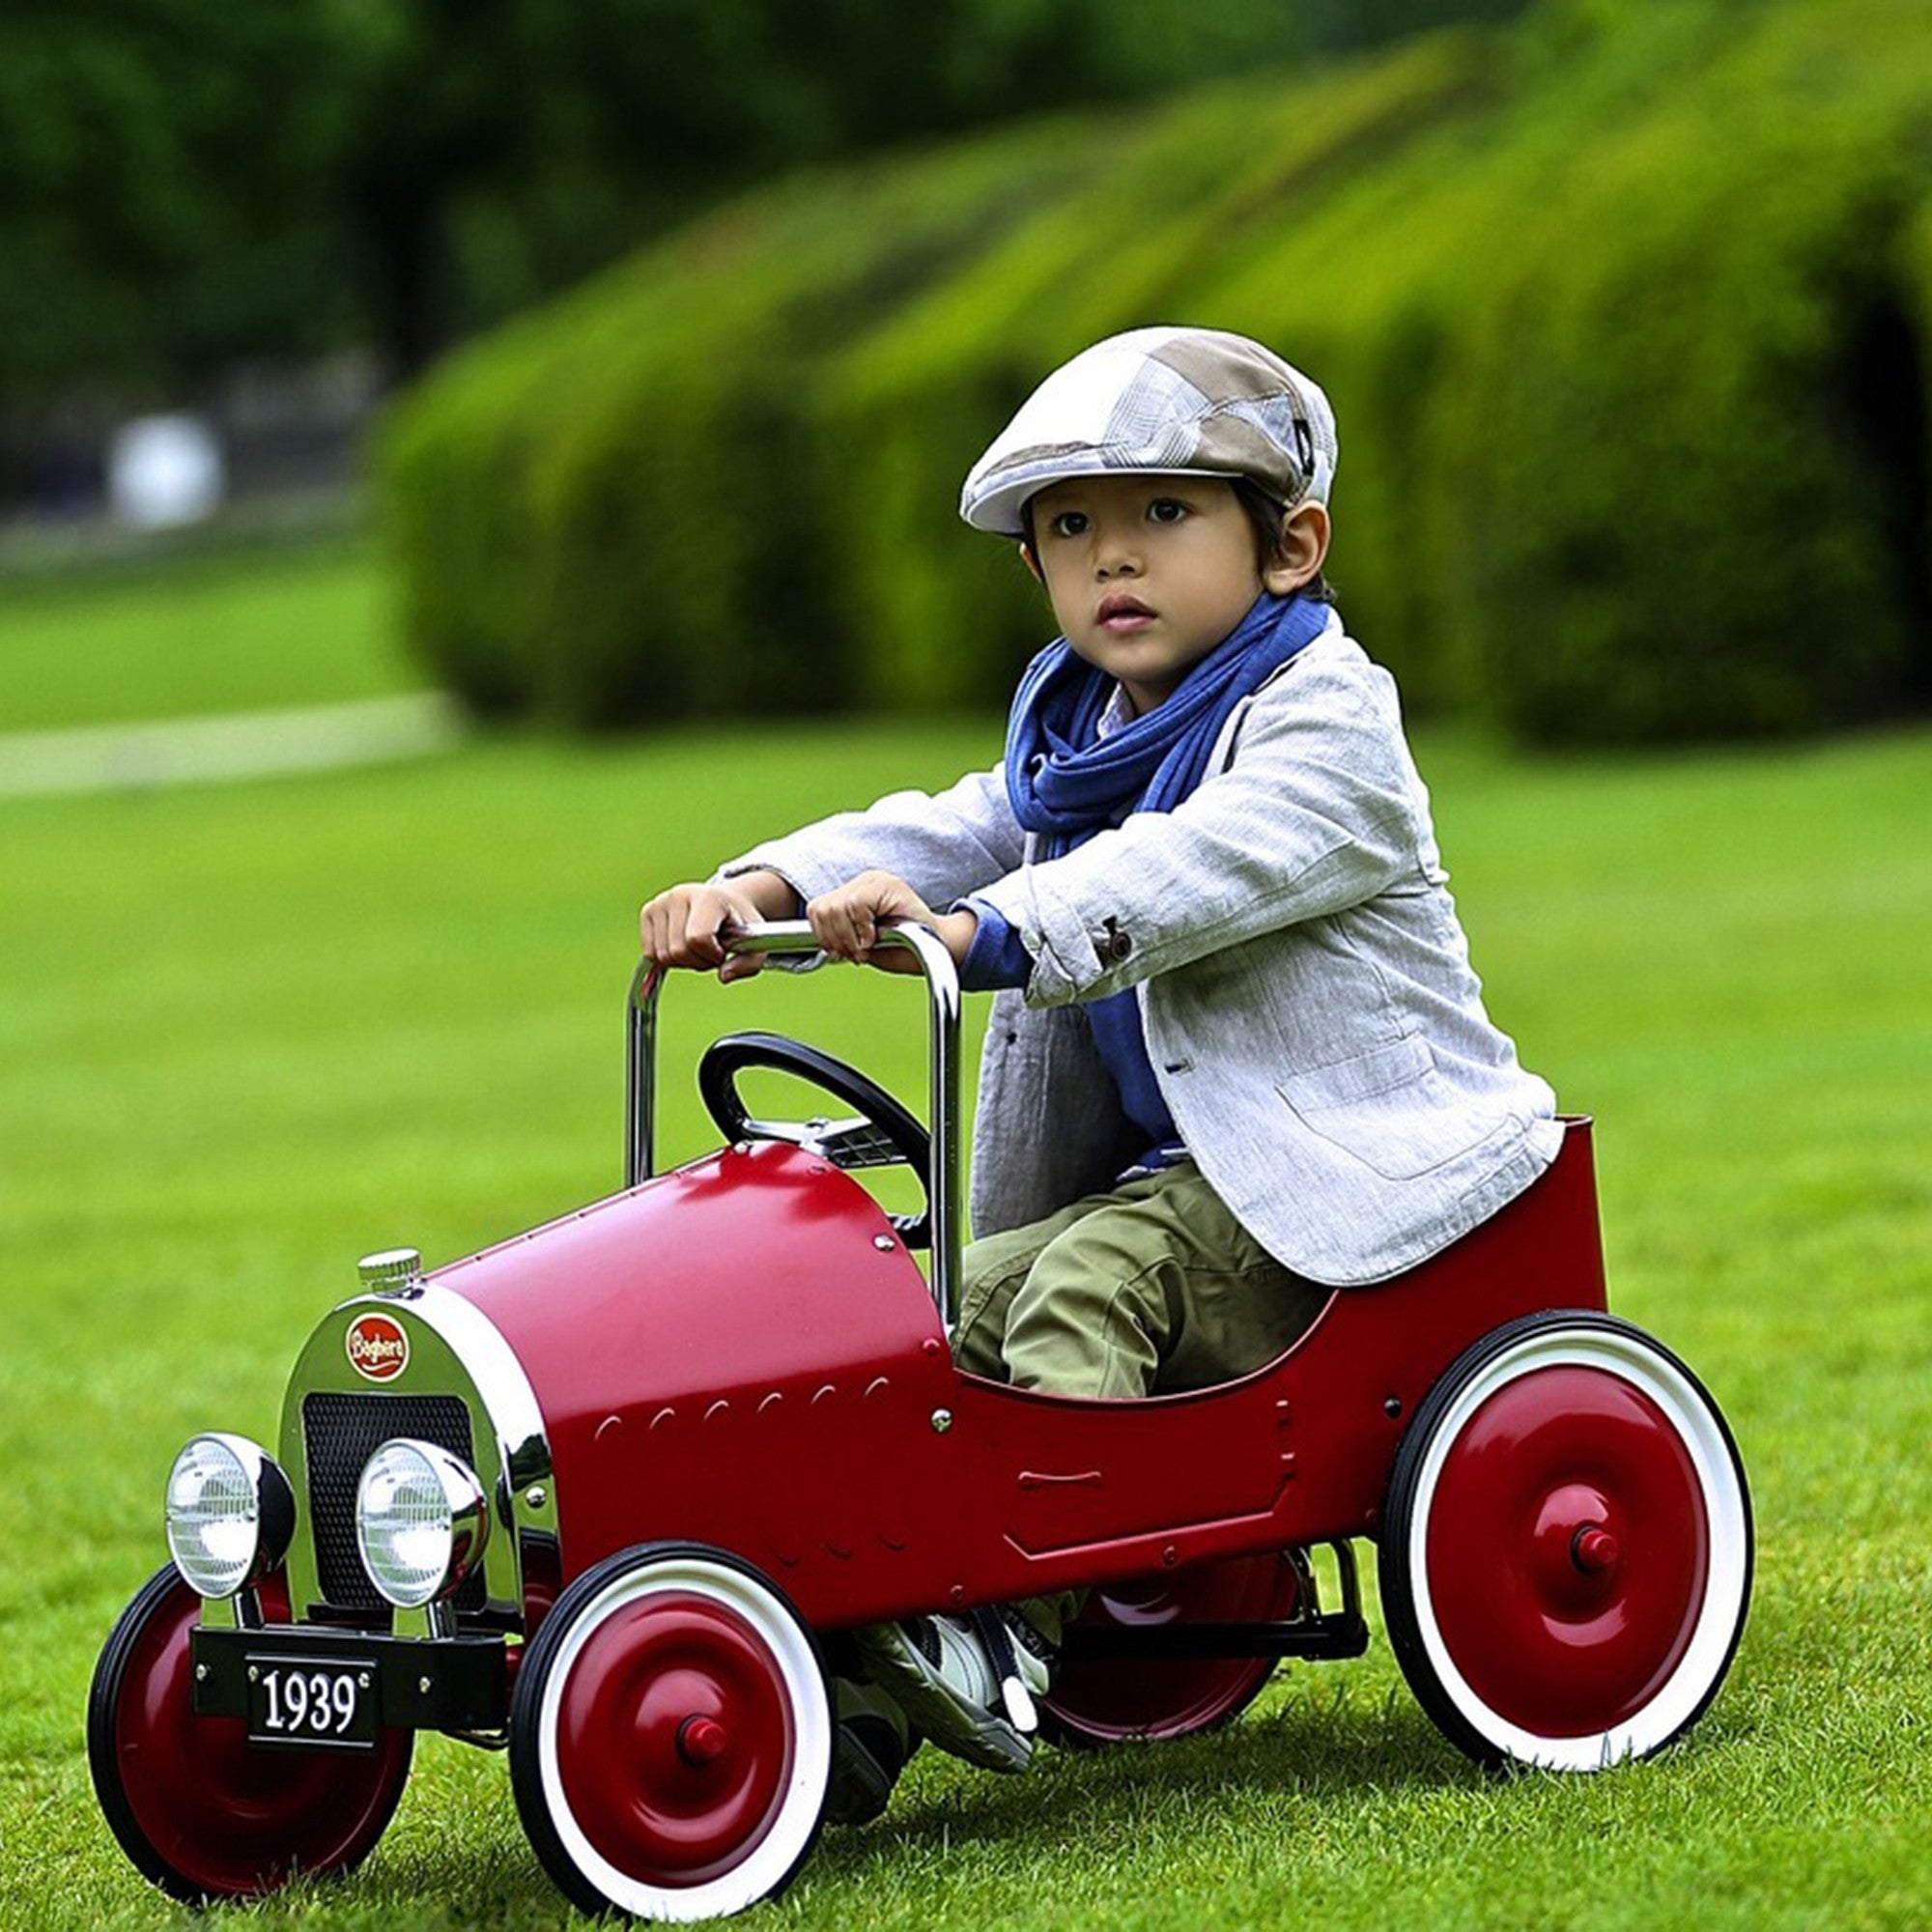 Classic Baghera Pedal Car Baghera Kids Riding Vehicles Red at Little Earth Nest Eco Shop